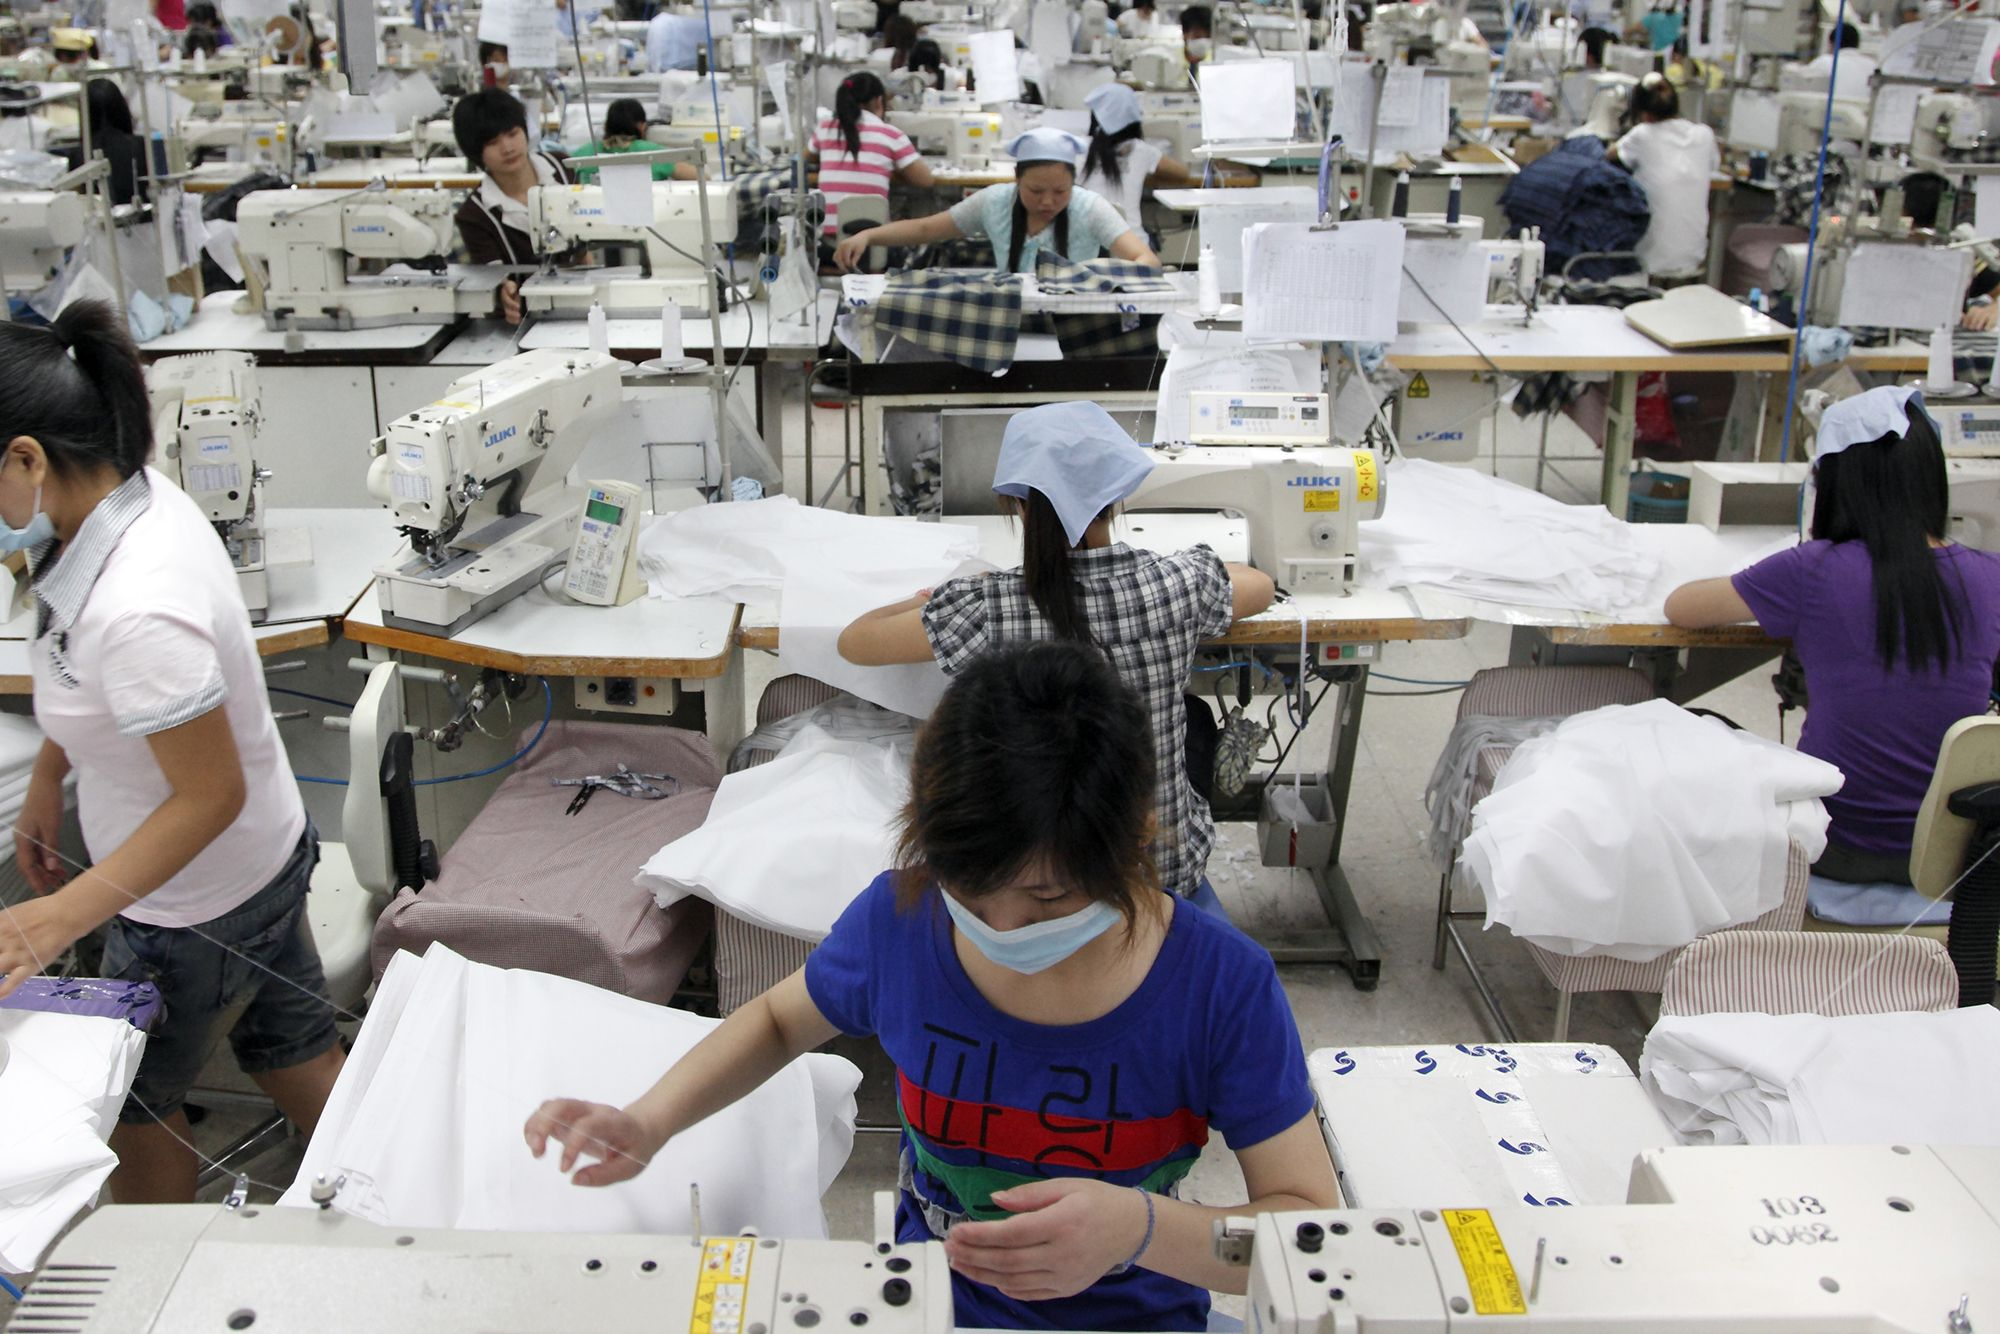 China - Manufacturing - Textile Alliance Apparel factory in Qingxi Township